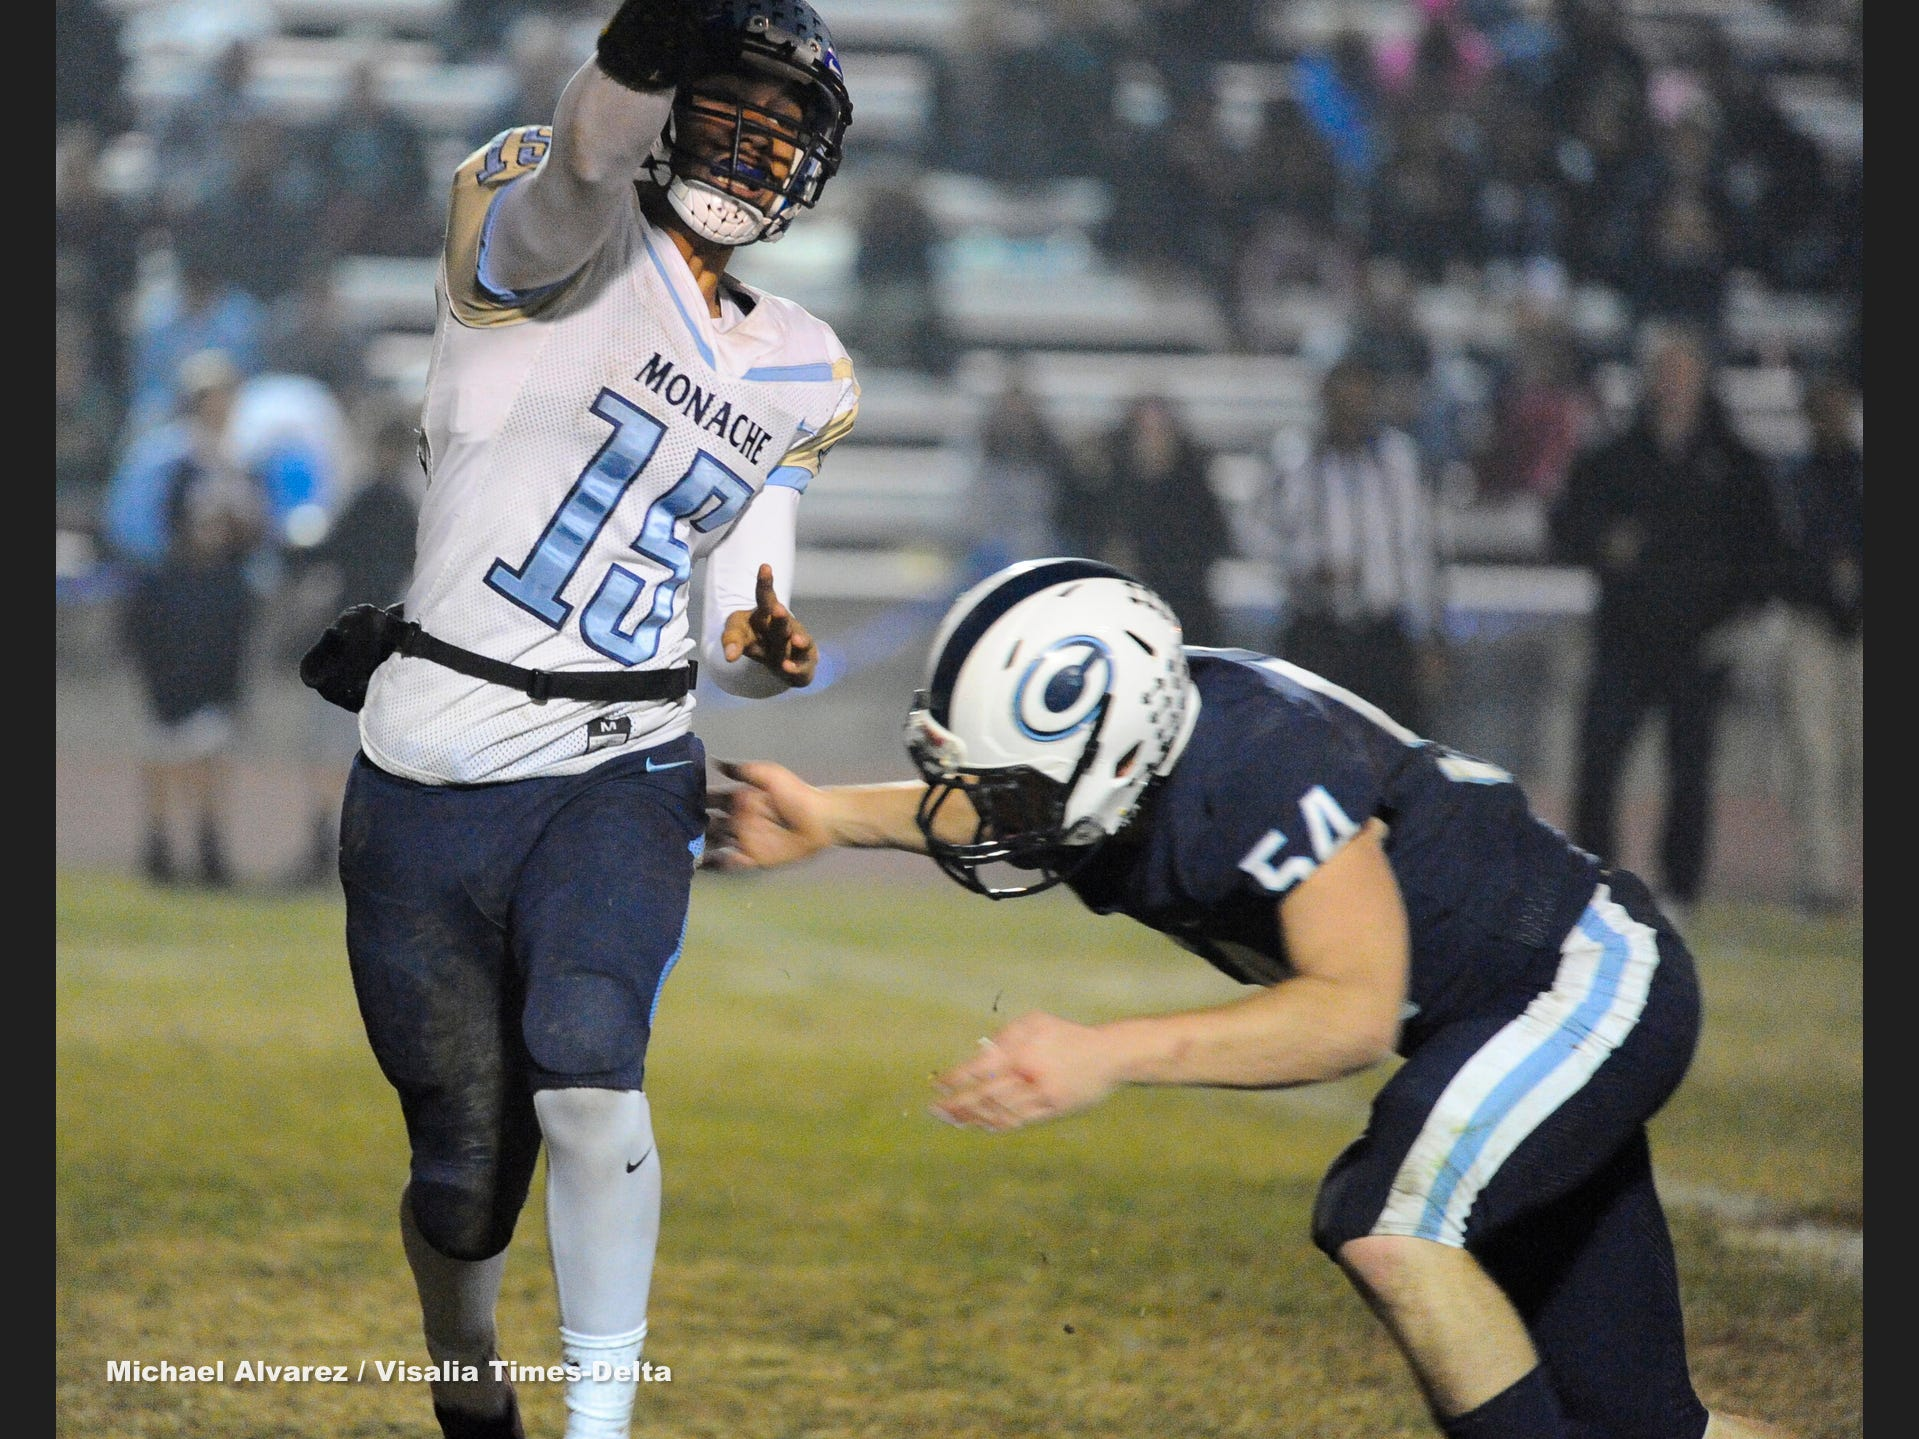 Monache Antonio Andrade just gets the passed as Central Valley Christian Noah Nyenhuis goes for the tackle during the Central Section Division IV playoff on November 16, 2018.